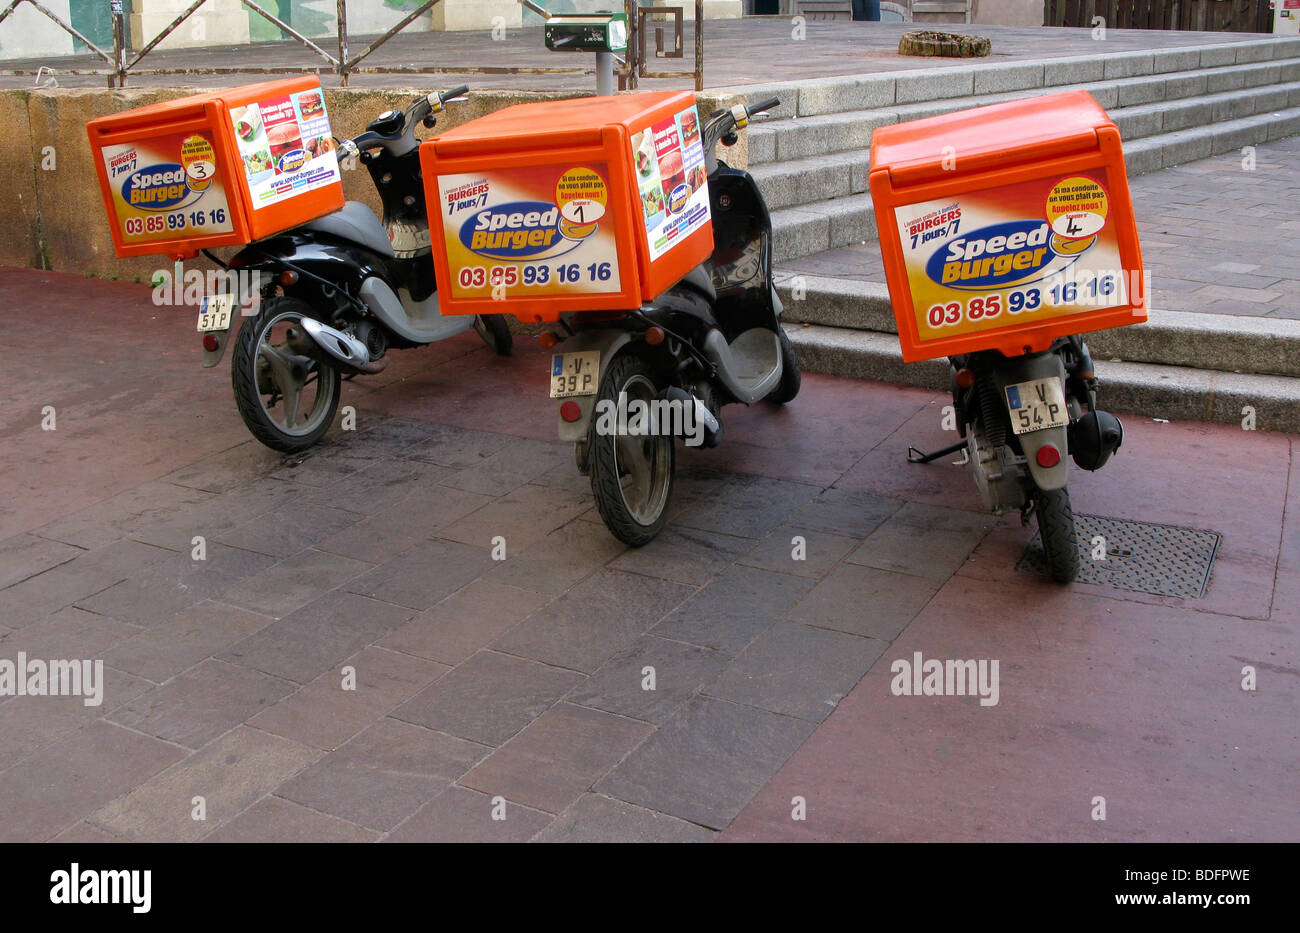 fast food delivery vehicles motocycles - Stock Image